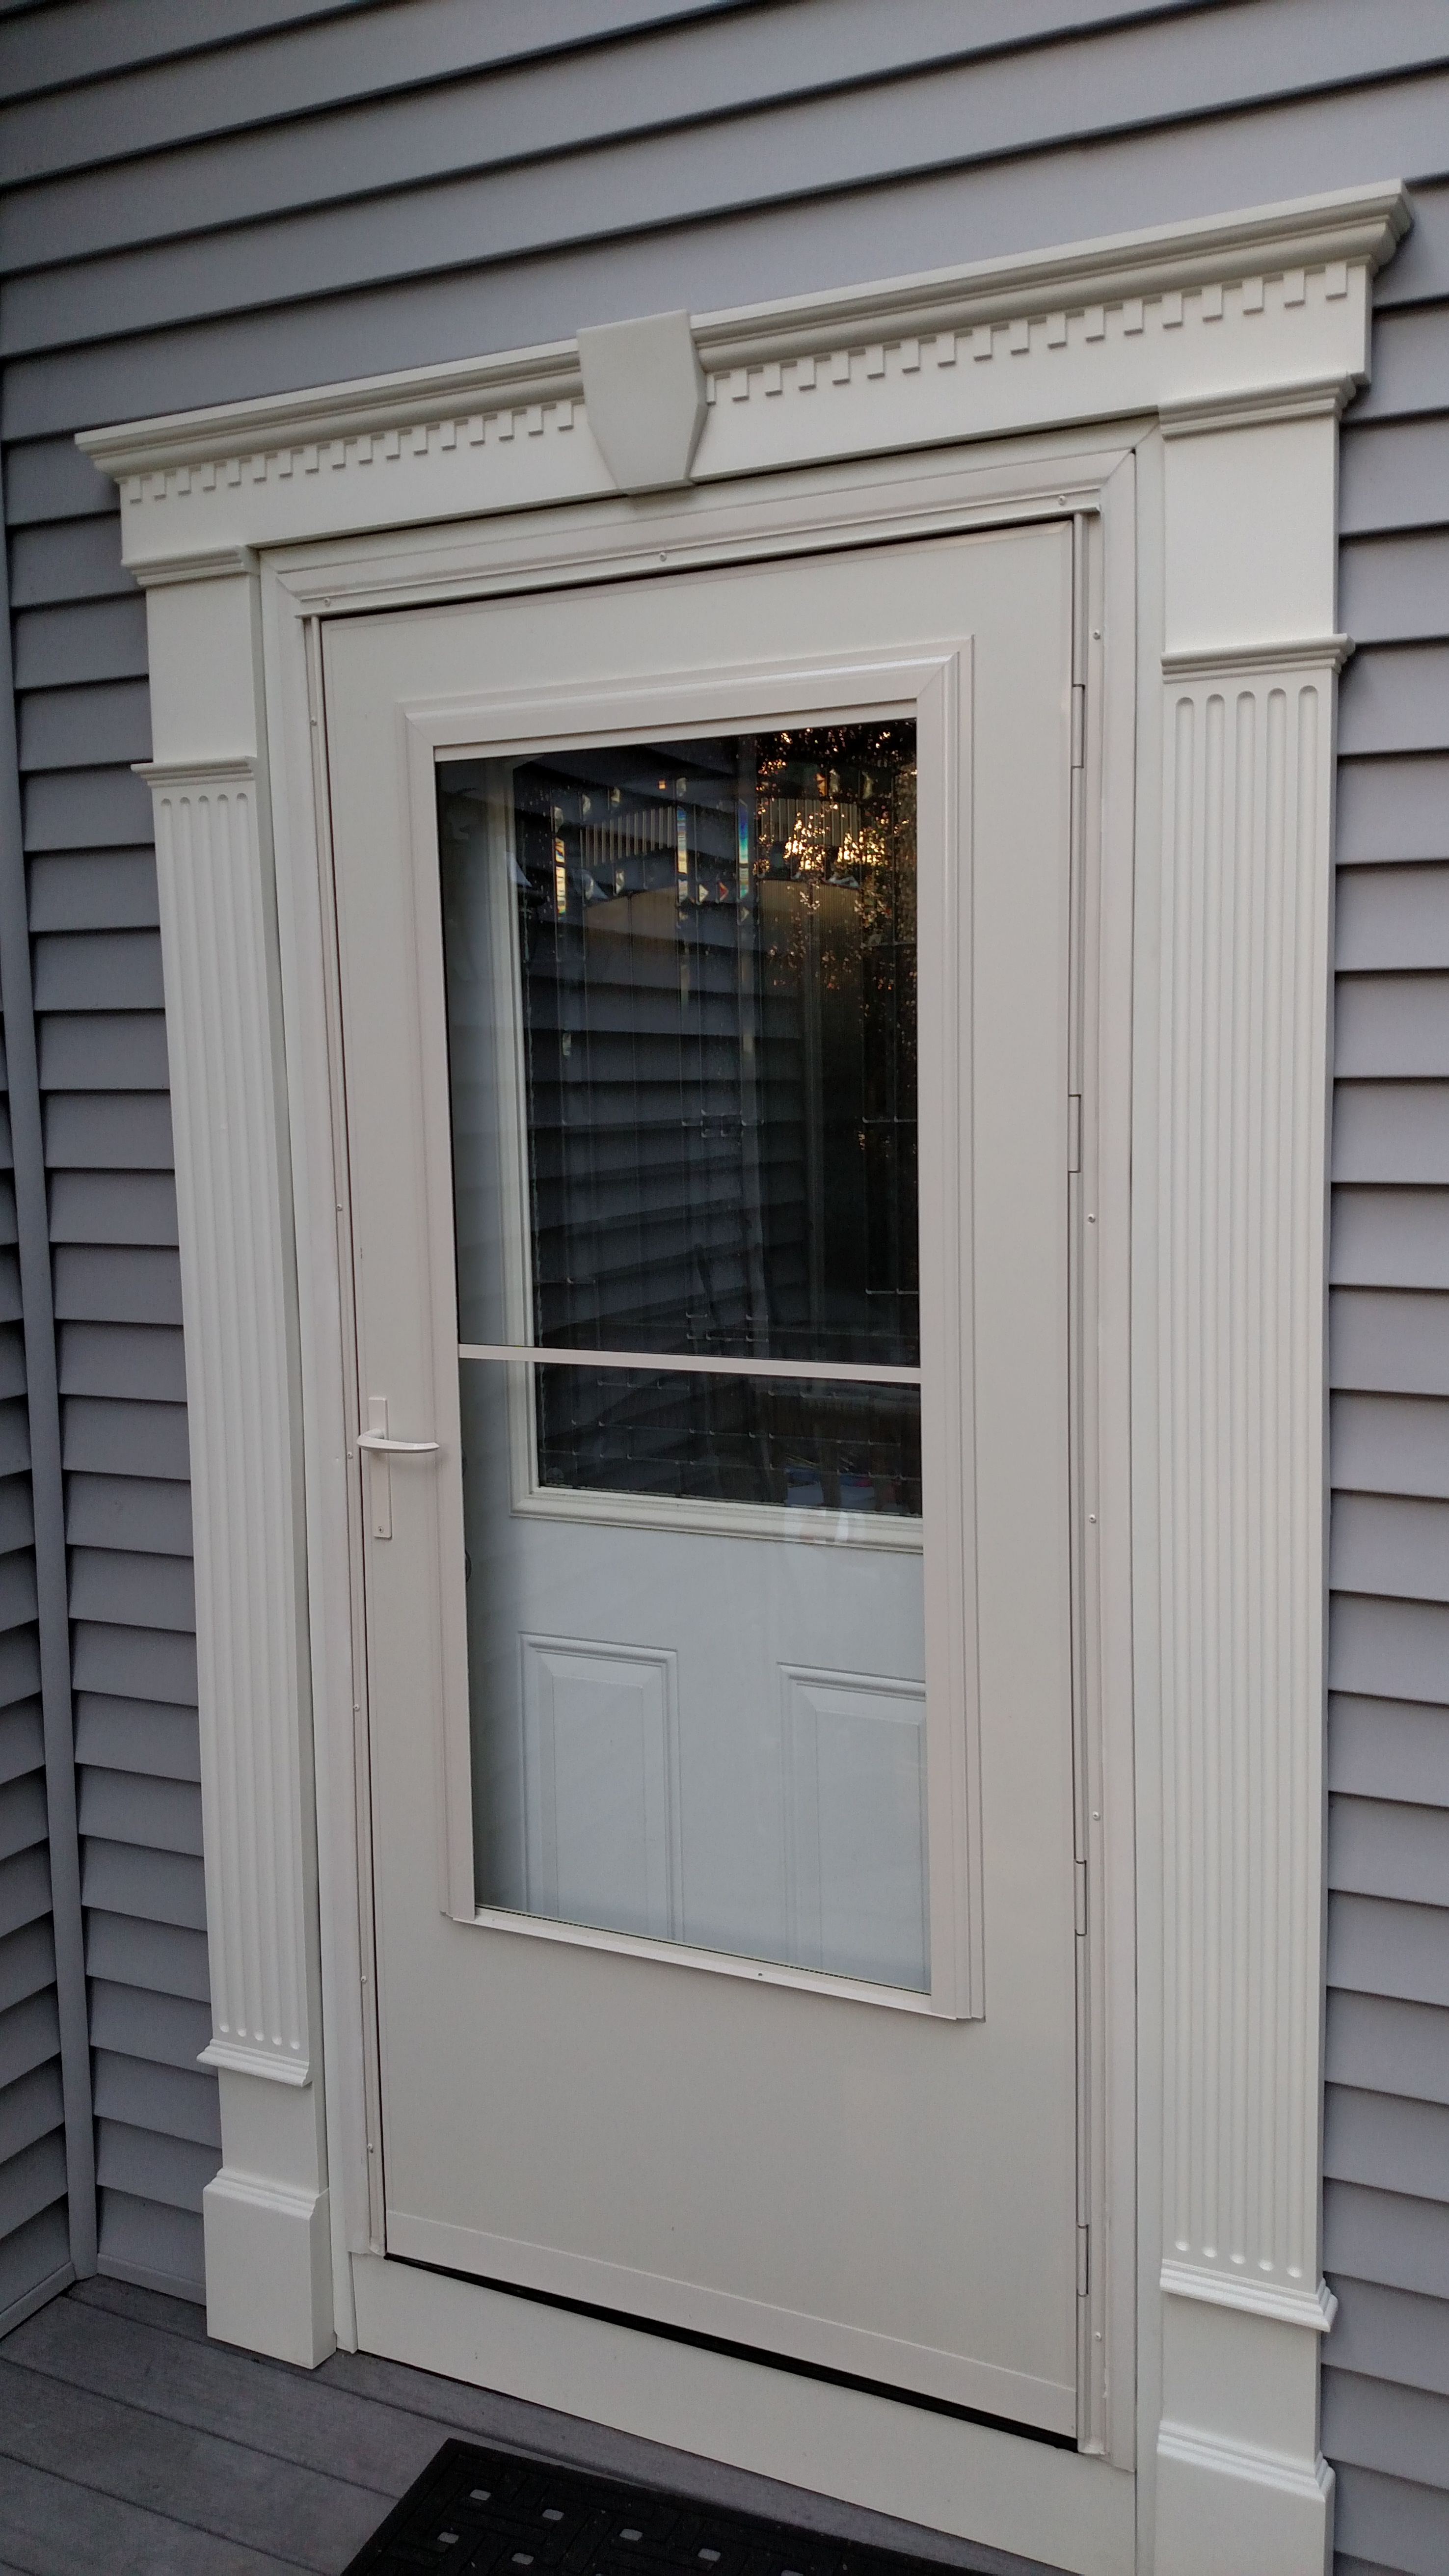 2 IMG_20150921_180047540 & Door and Window Project | Architectural Depot